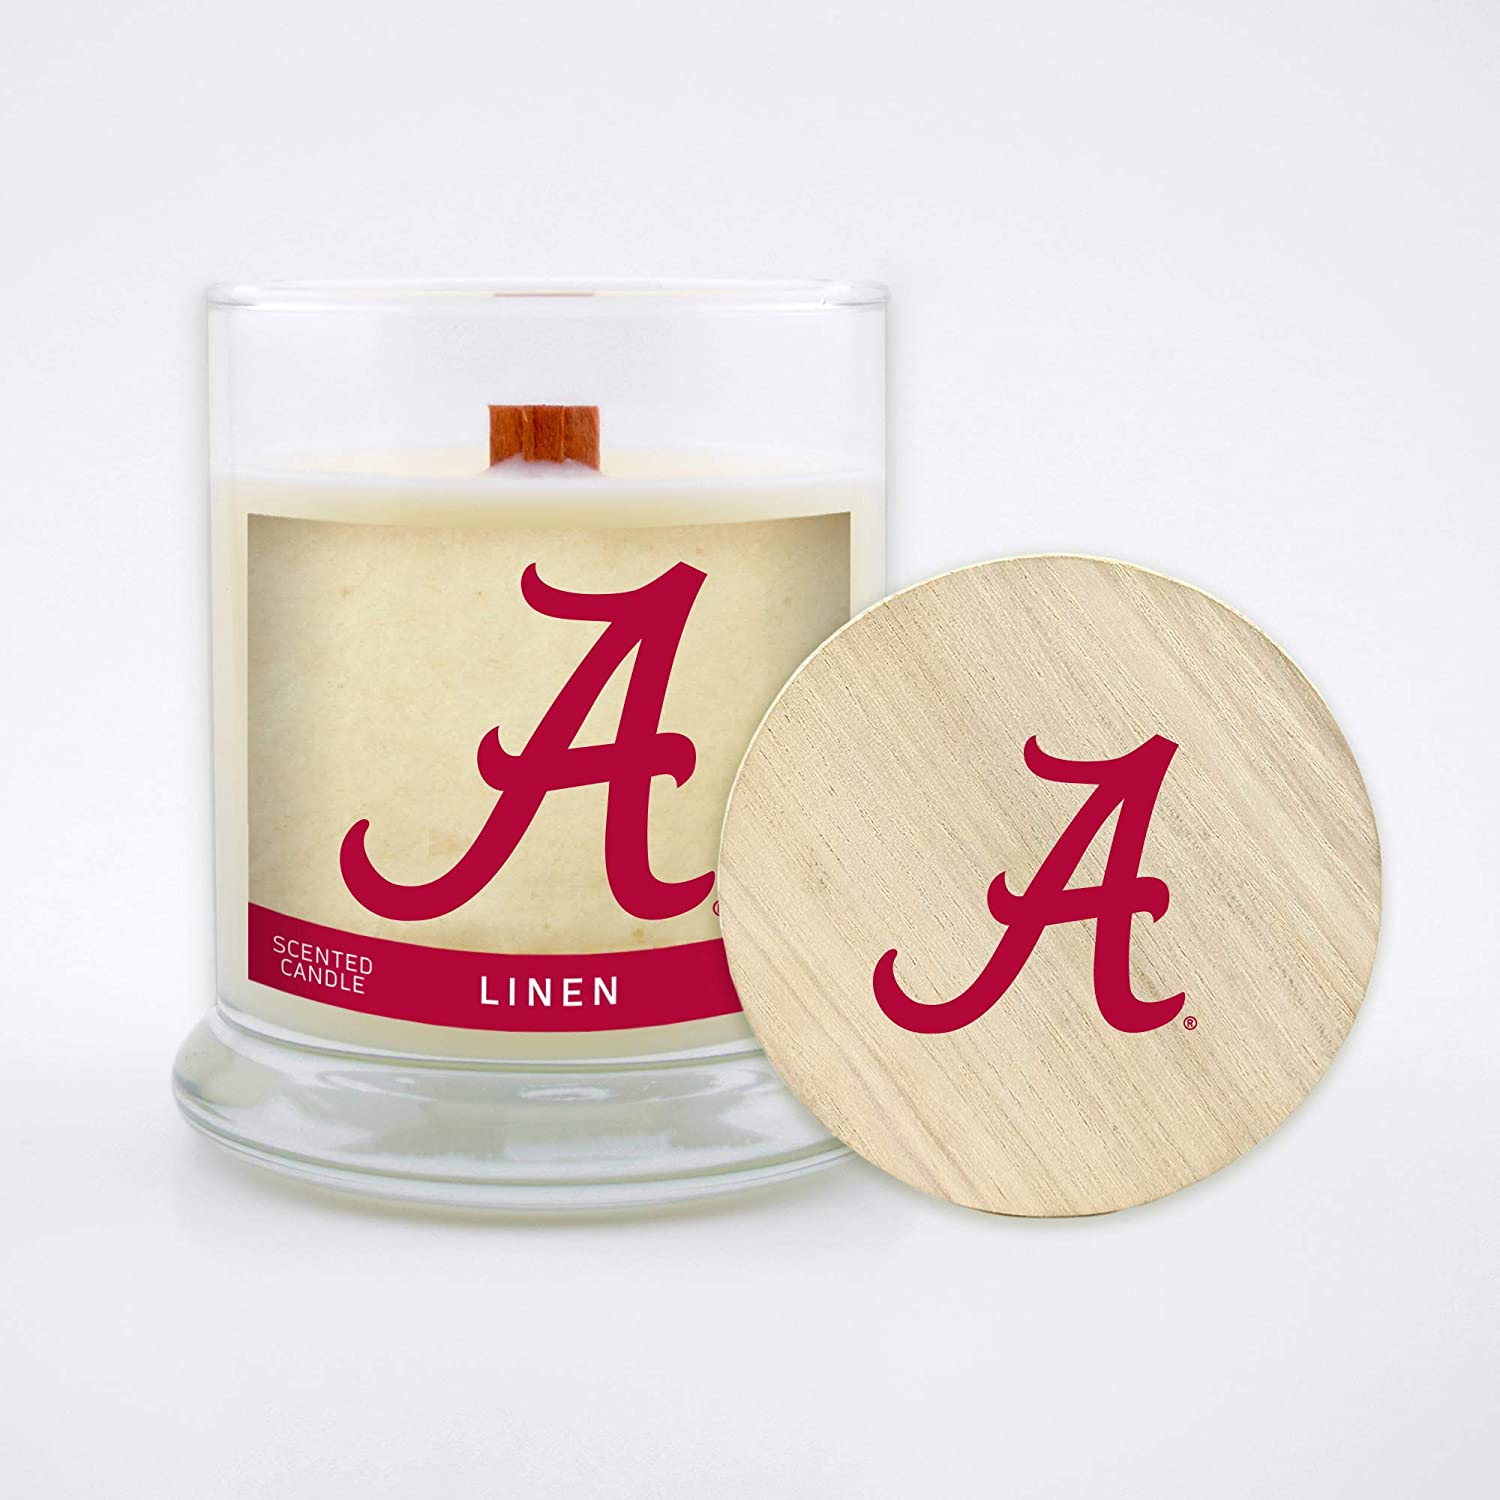 Worthy Promo NCAA Alabama Crimson Tide 8 oz Linen Scented Soy Wax Candle Wood Wick and Lid